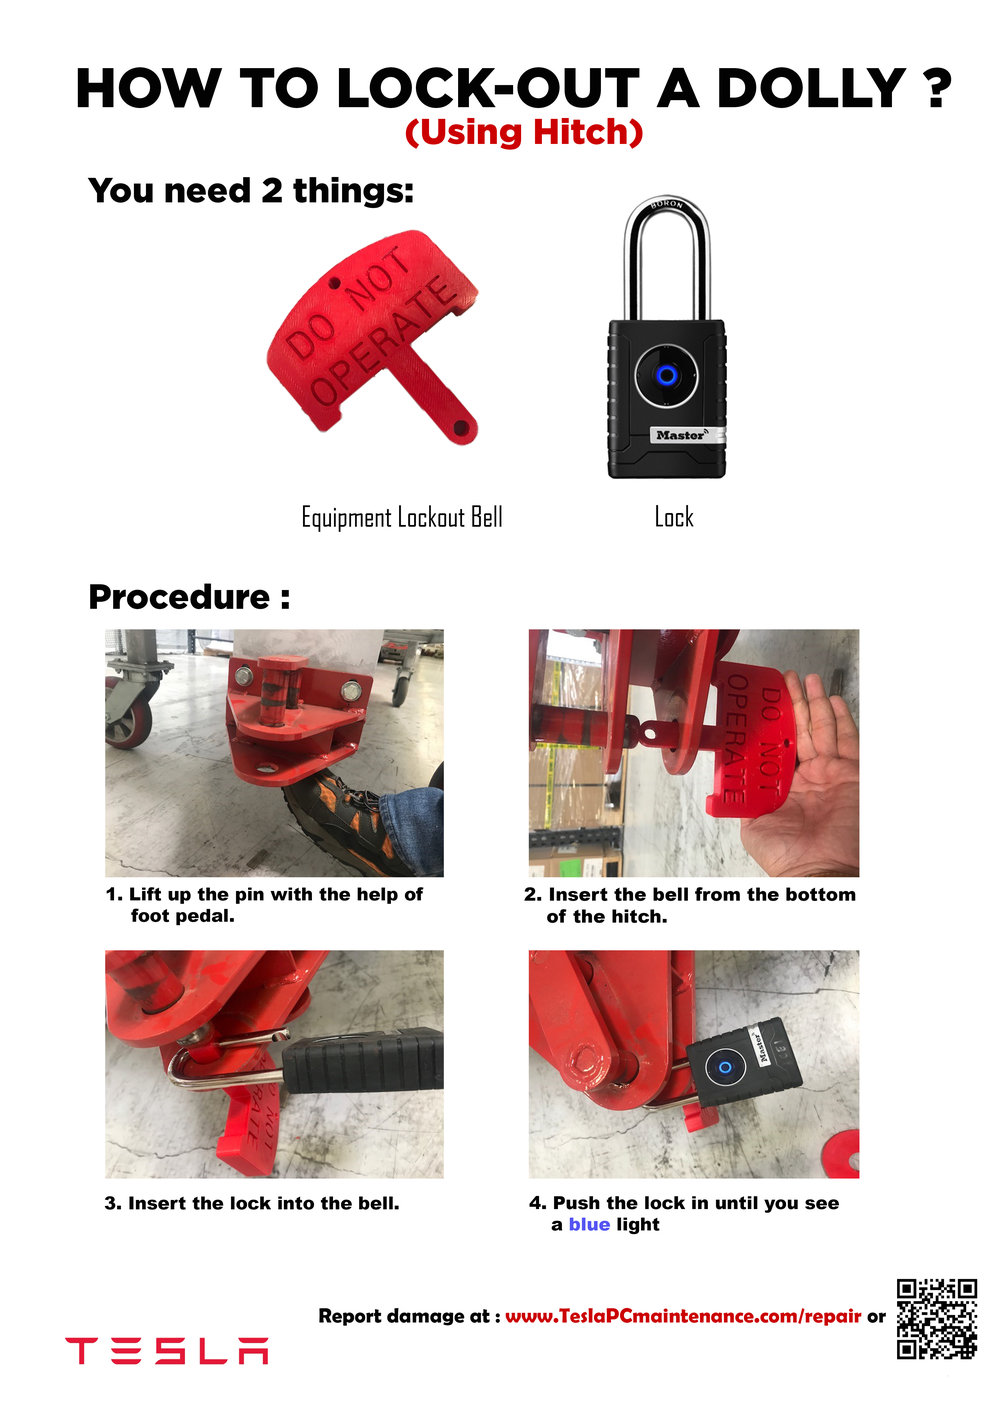 How to lock a dolly-hitch.jpg